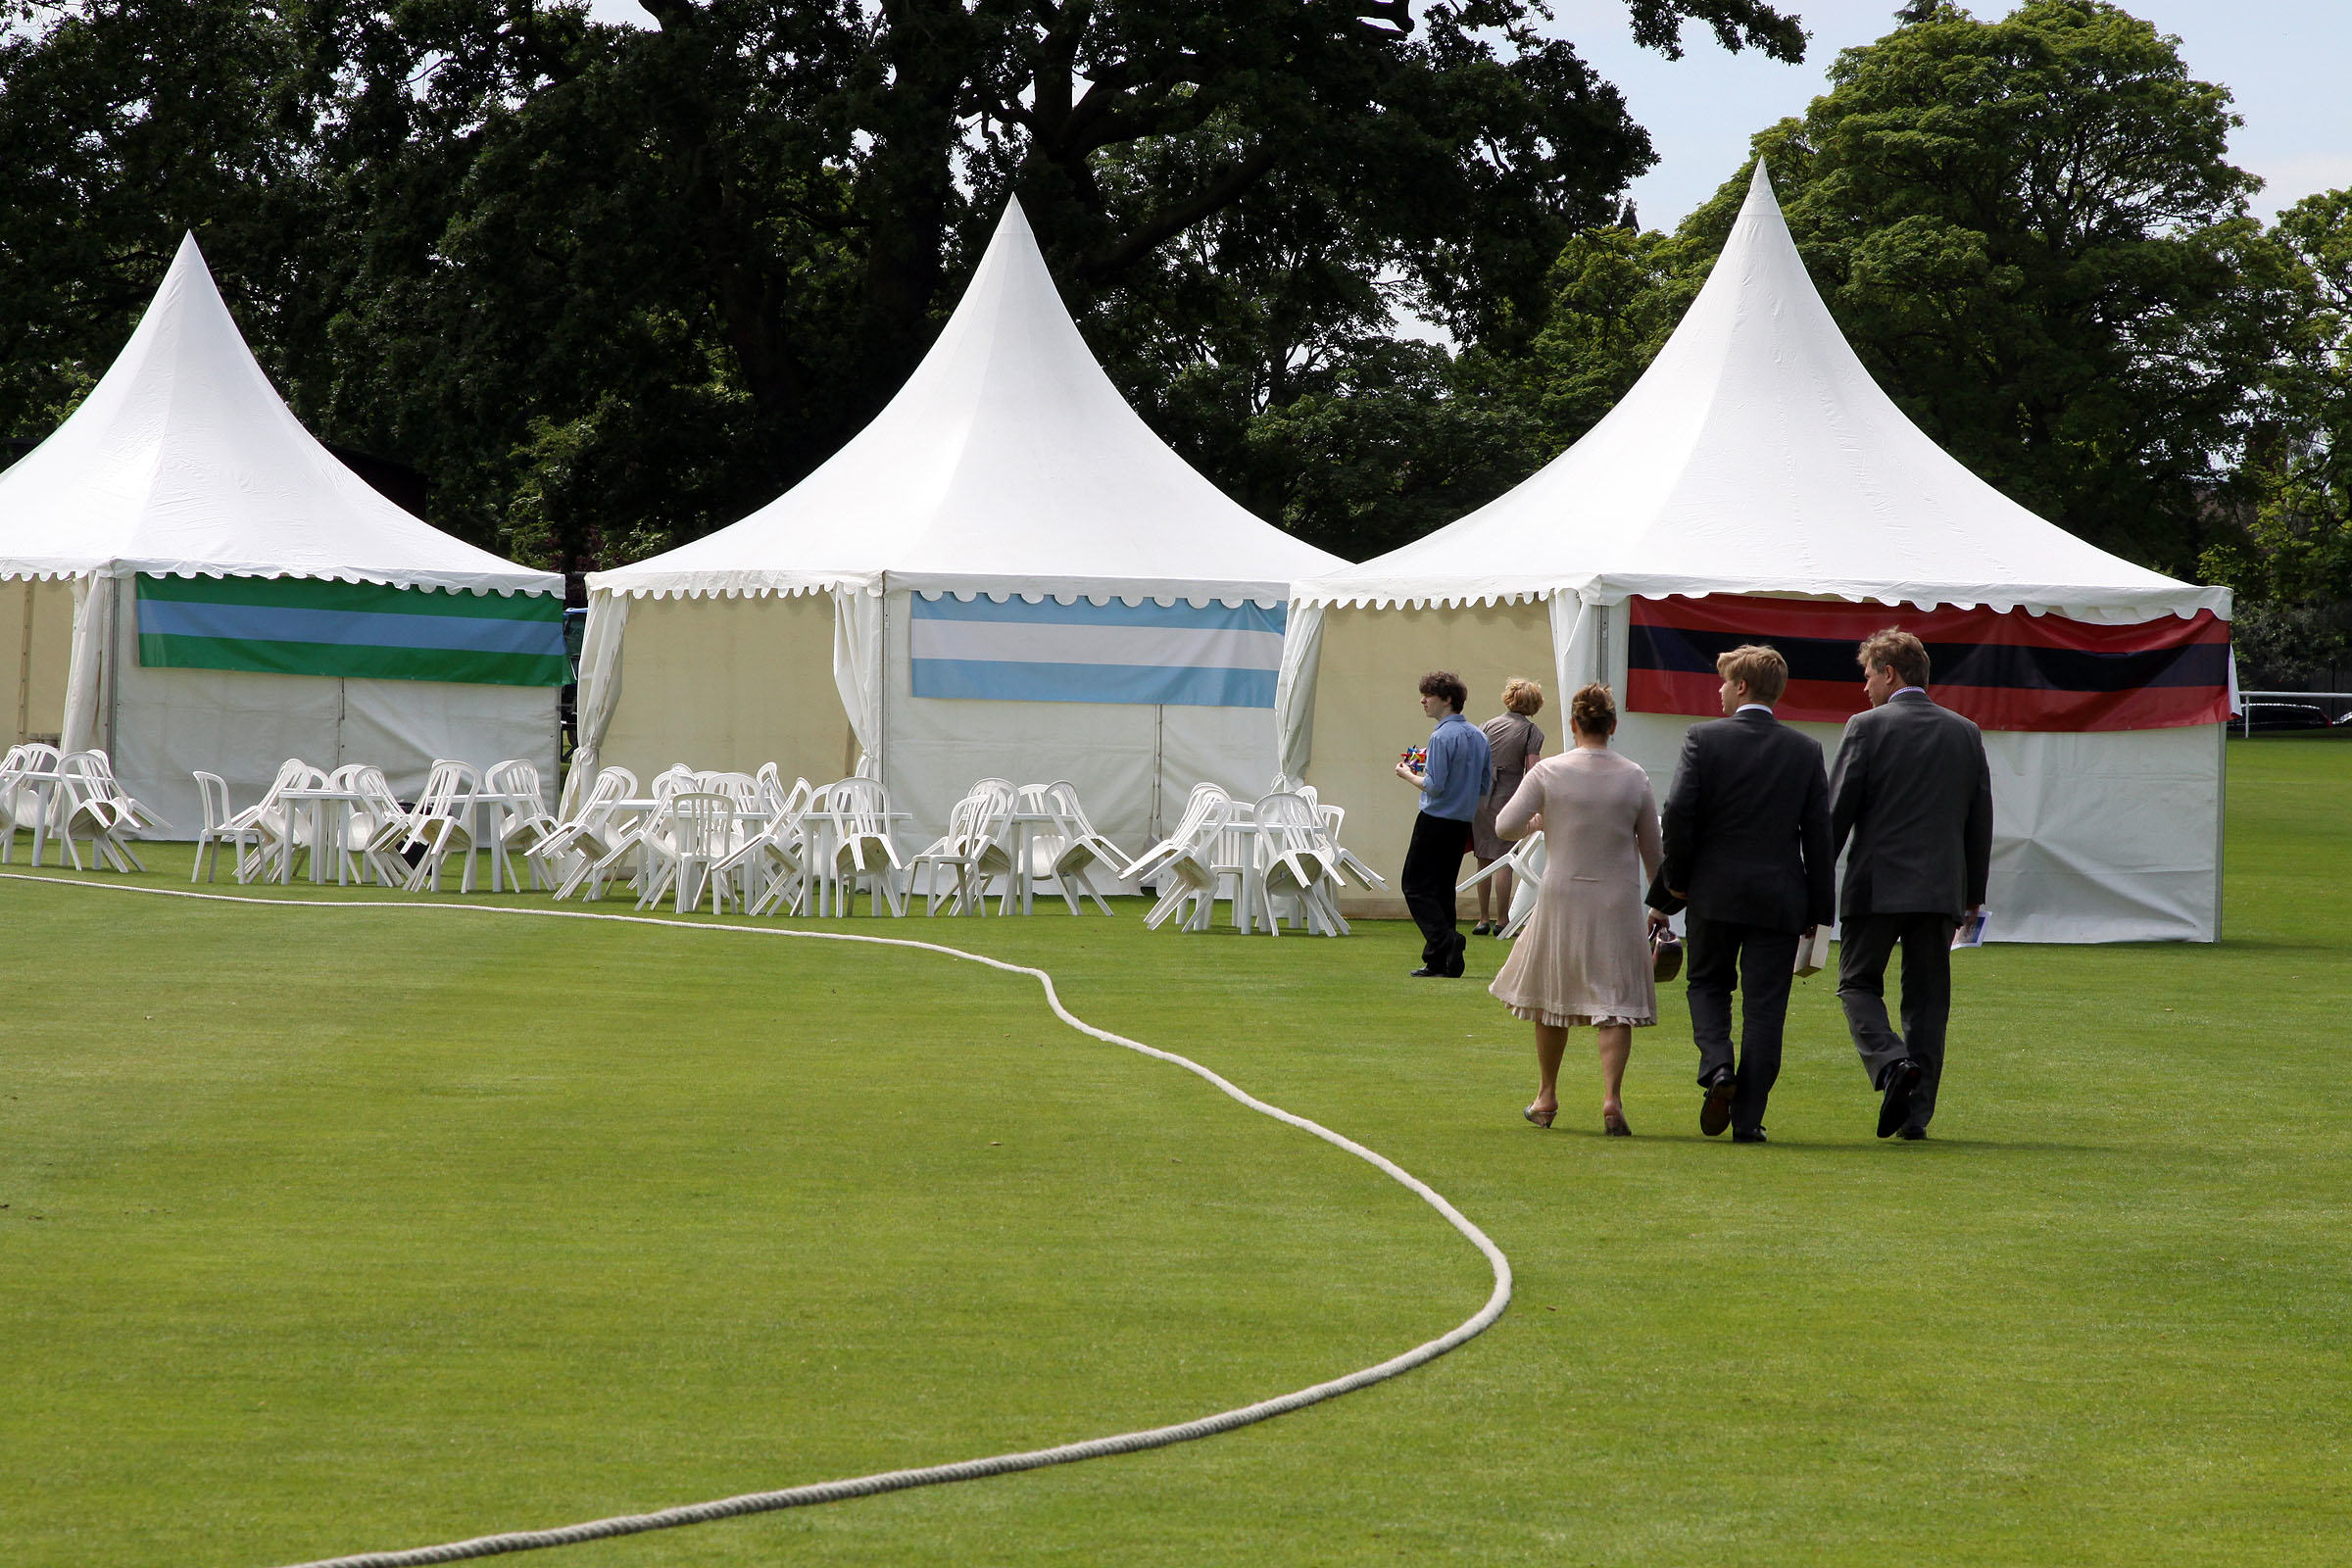 Tents and Marquess – Corporate event